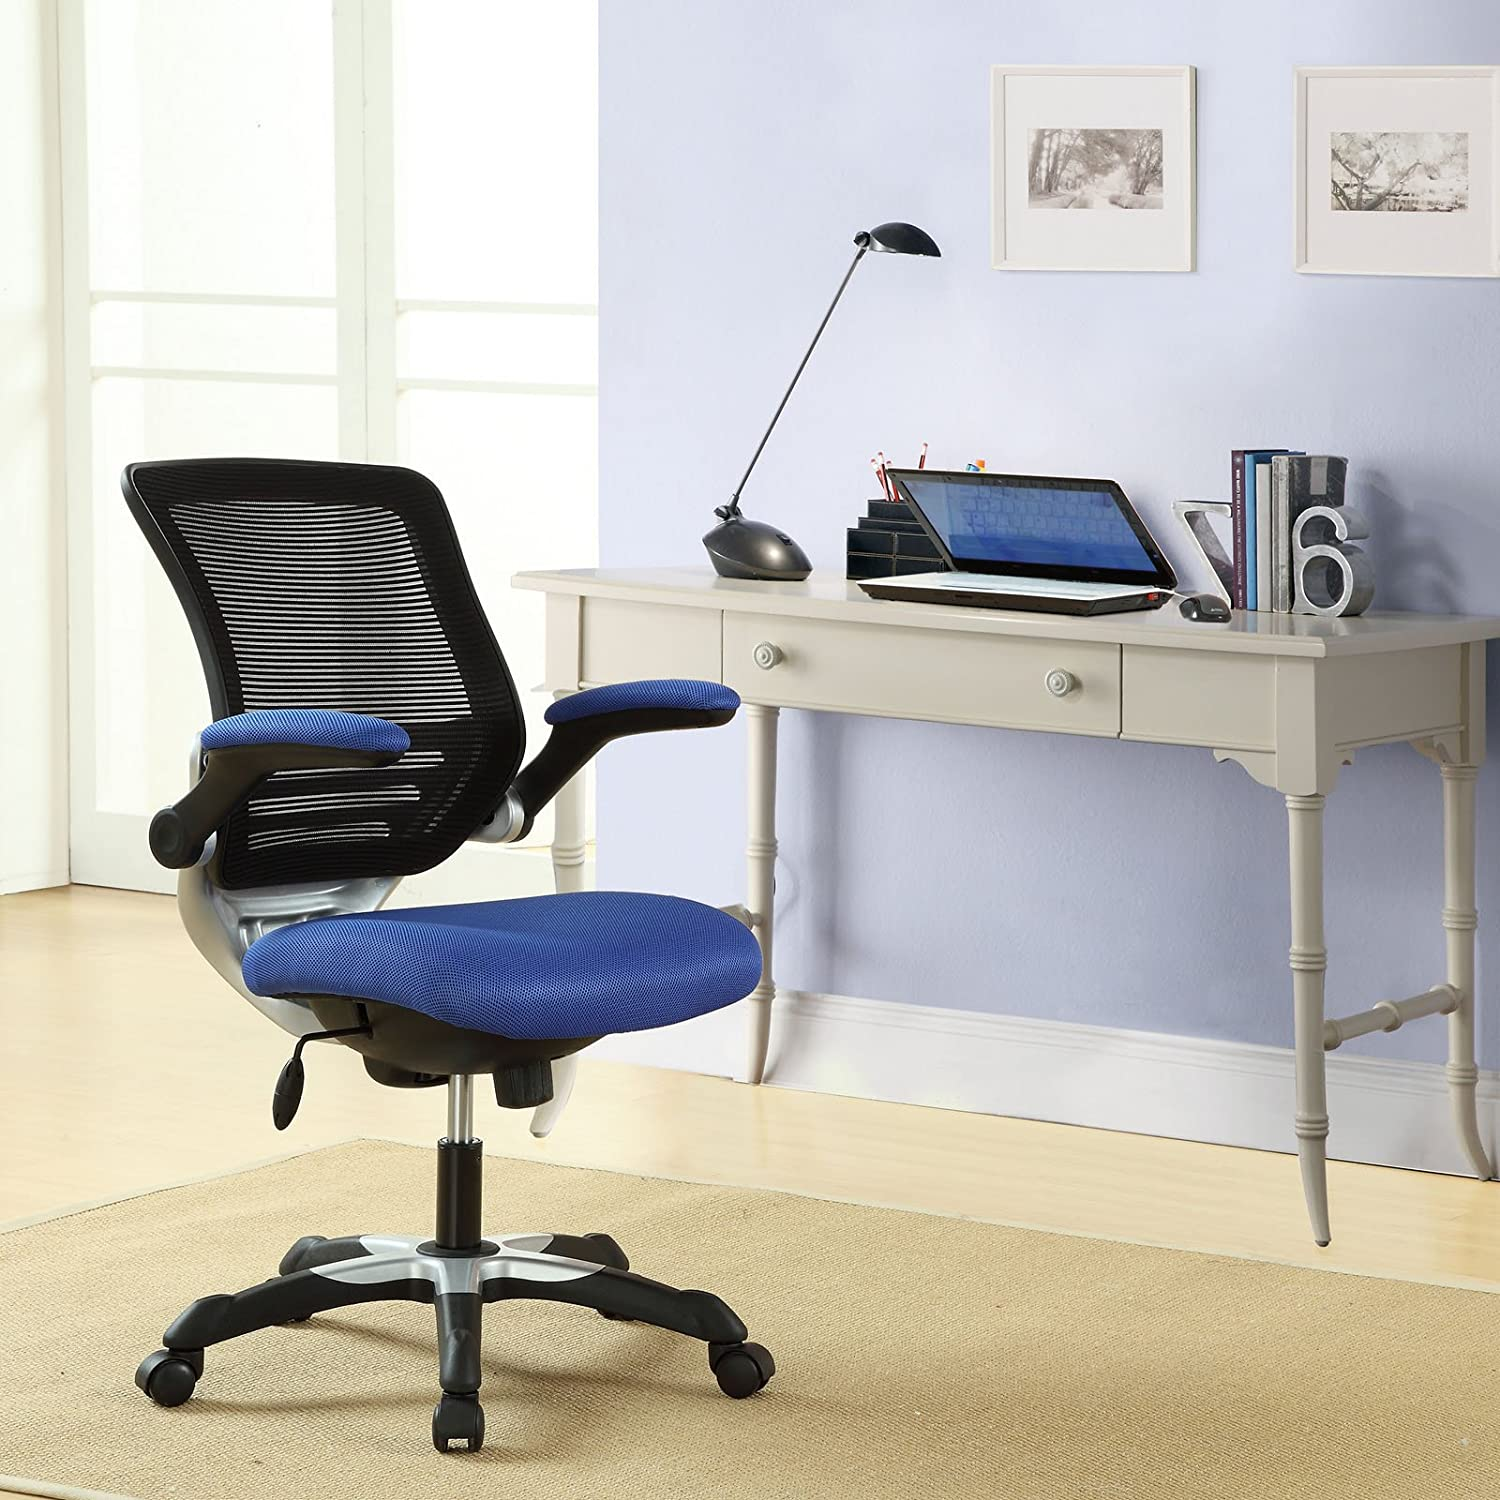 Desk chair kitchen - Amazon Com Modway Edge Mesh Back And Blue Mesh Seat Office Chair With Flip Up Arms Ergonomic Desk And Computer Chair Kitchen Dining